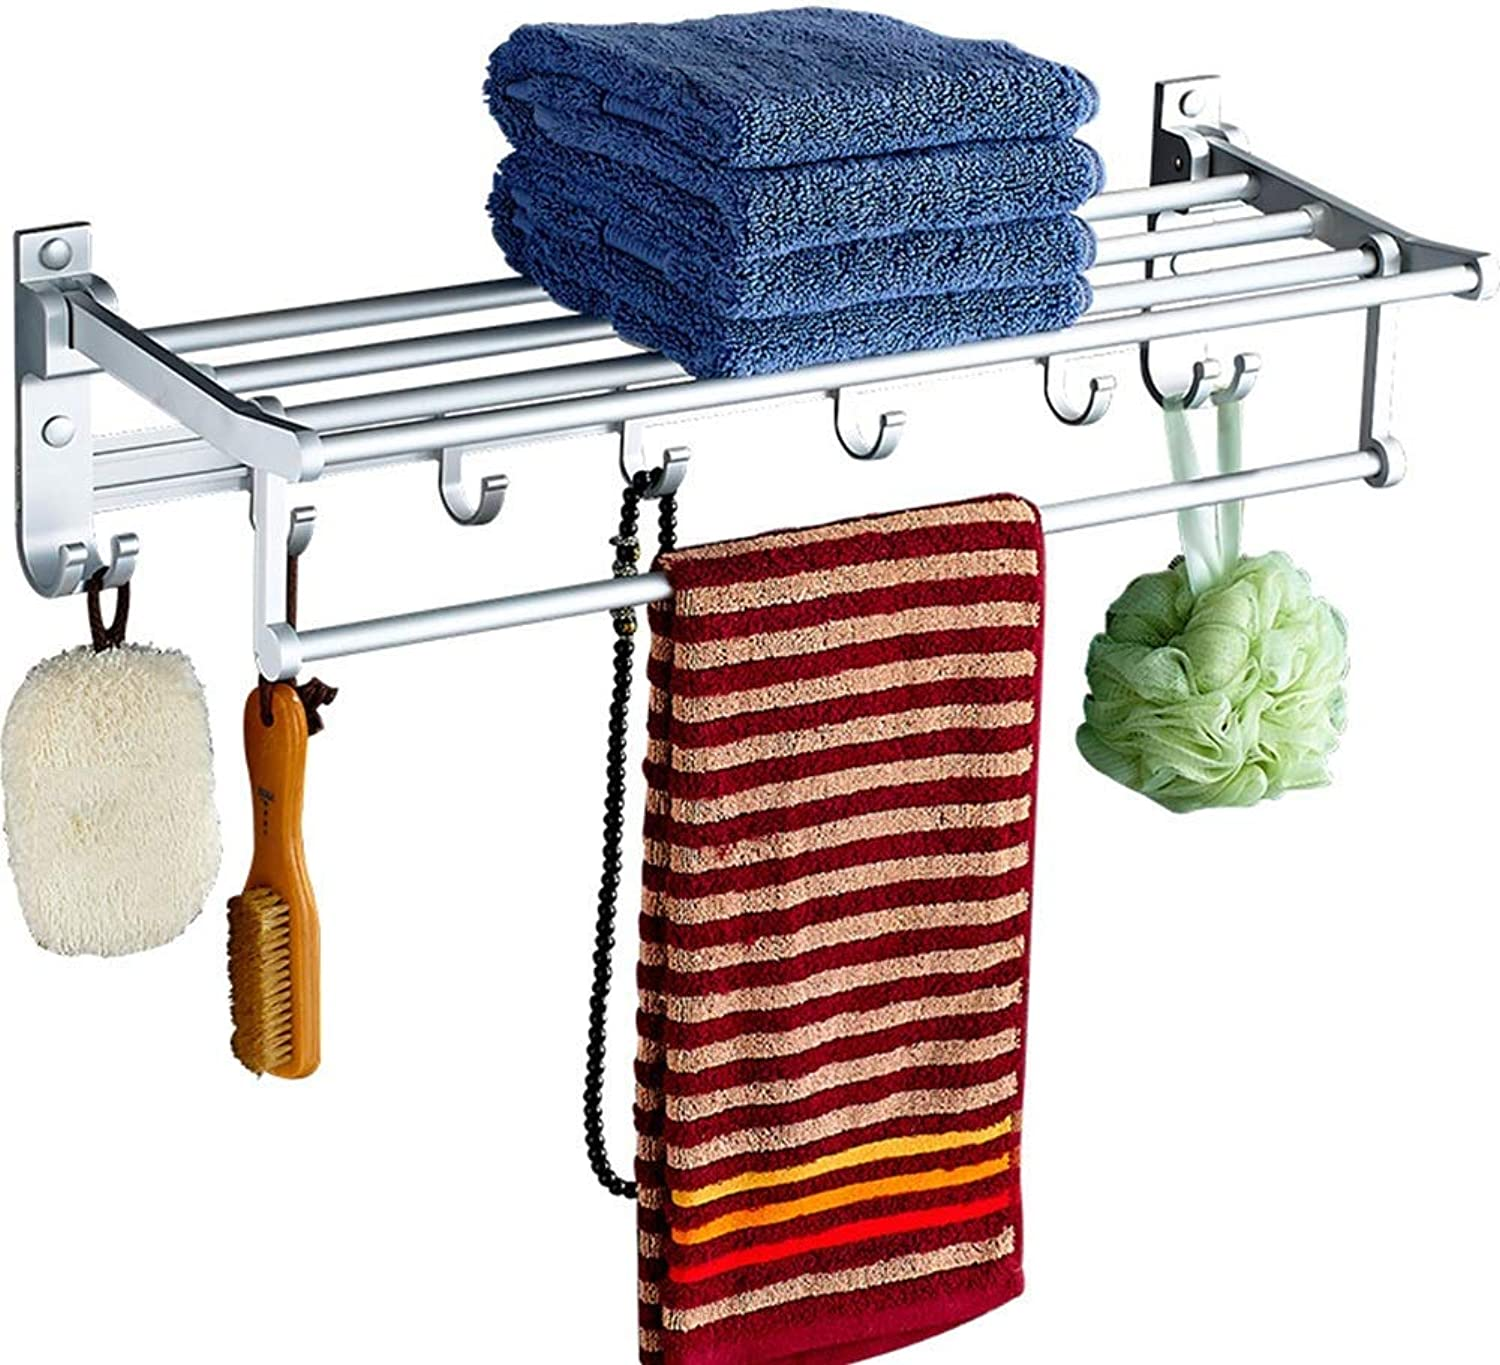 Storage Shelf Bathroom Shelves Rack Wall Mount Storage Towel Rack Waterproof with Rod Hook Space Aluminum, 4 Sizes Home Stand (color   Silver, Size   Length 40cm)